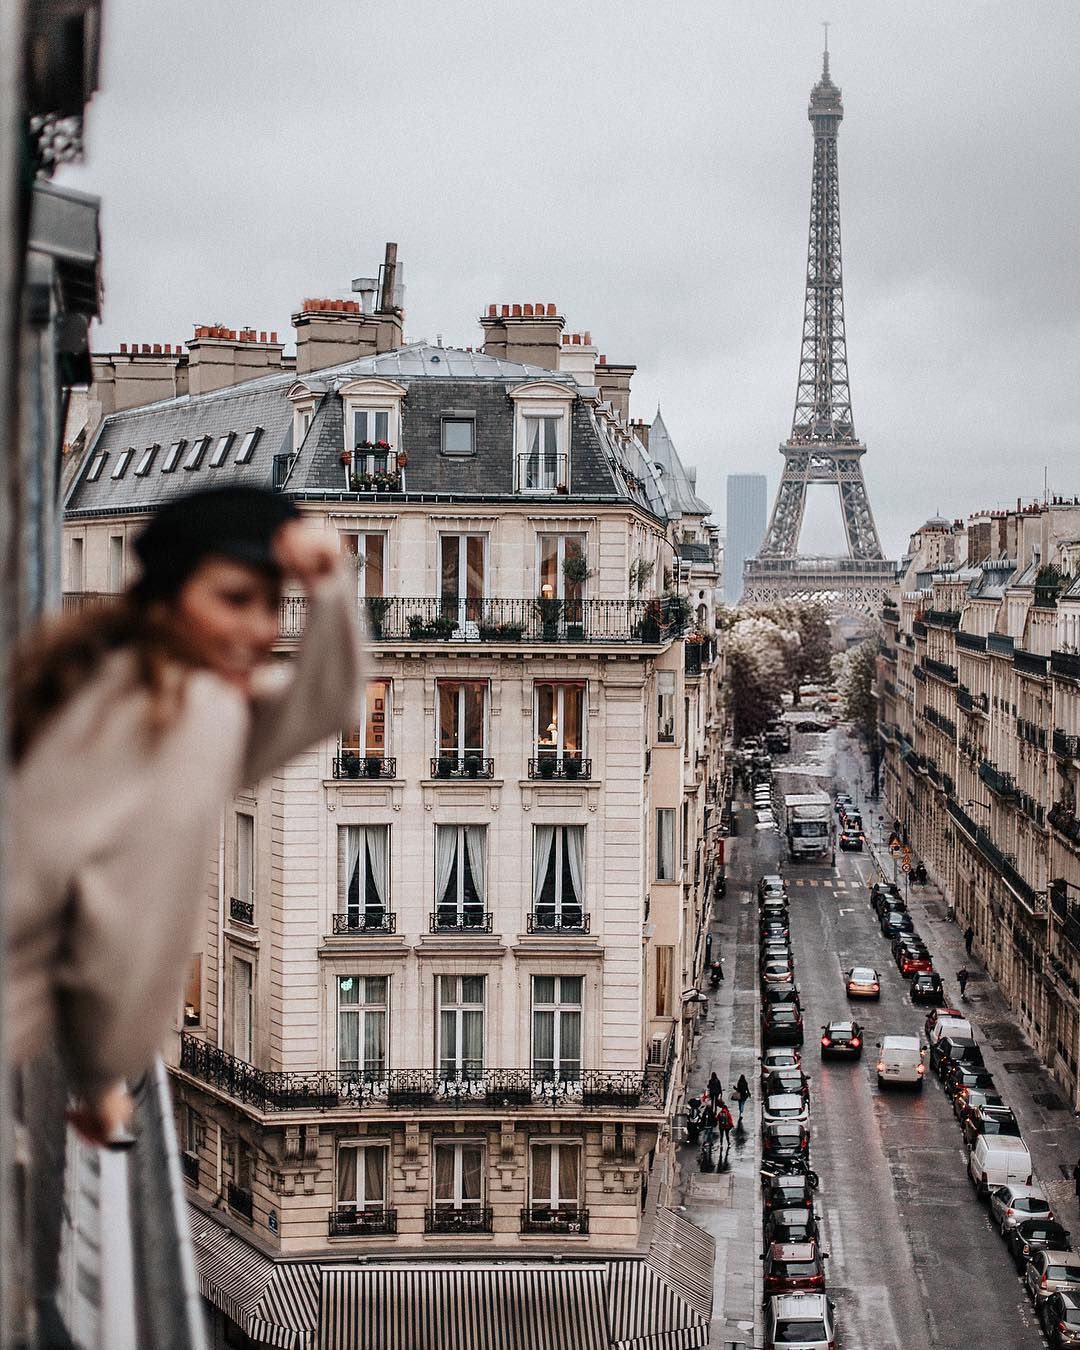 Ketevan Giorgadze On Instagram I Love Paris For The Million Reasons That Everybody Loves The City It S An Incredibly Rom Paris Travel Paris Places To Travel